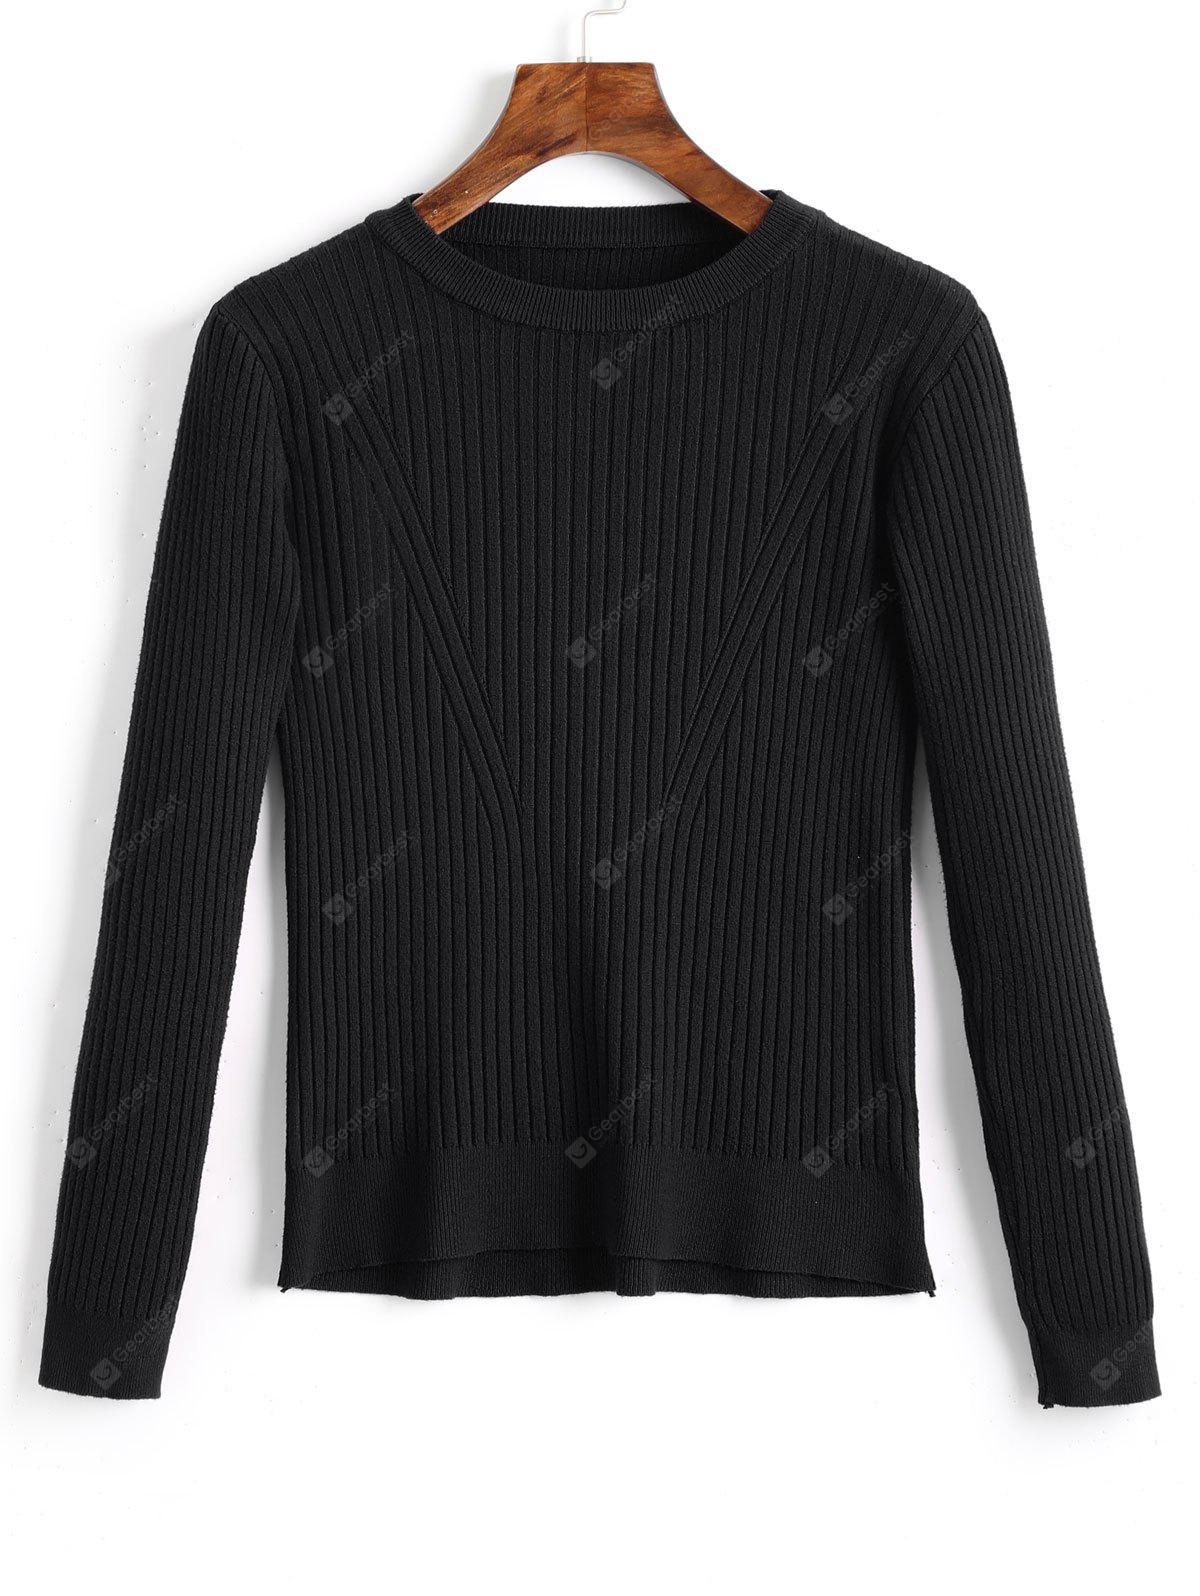 Ribbed Crew Neck Knitted Top